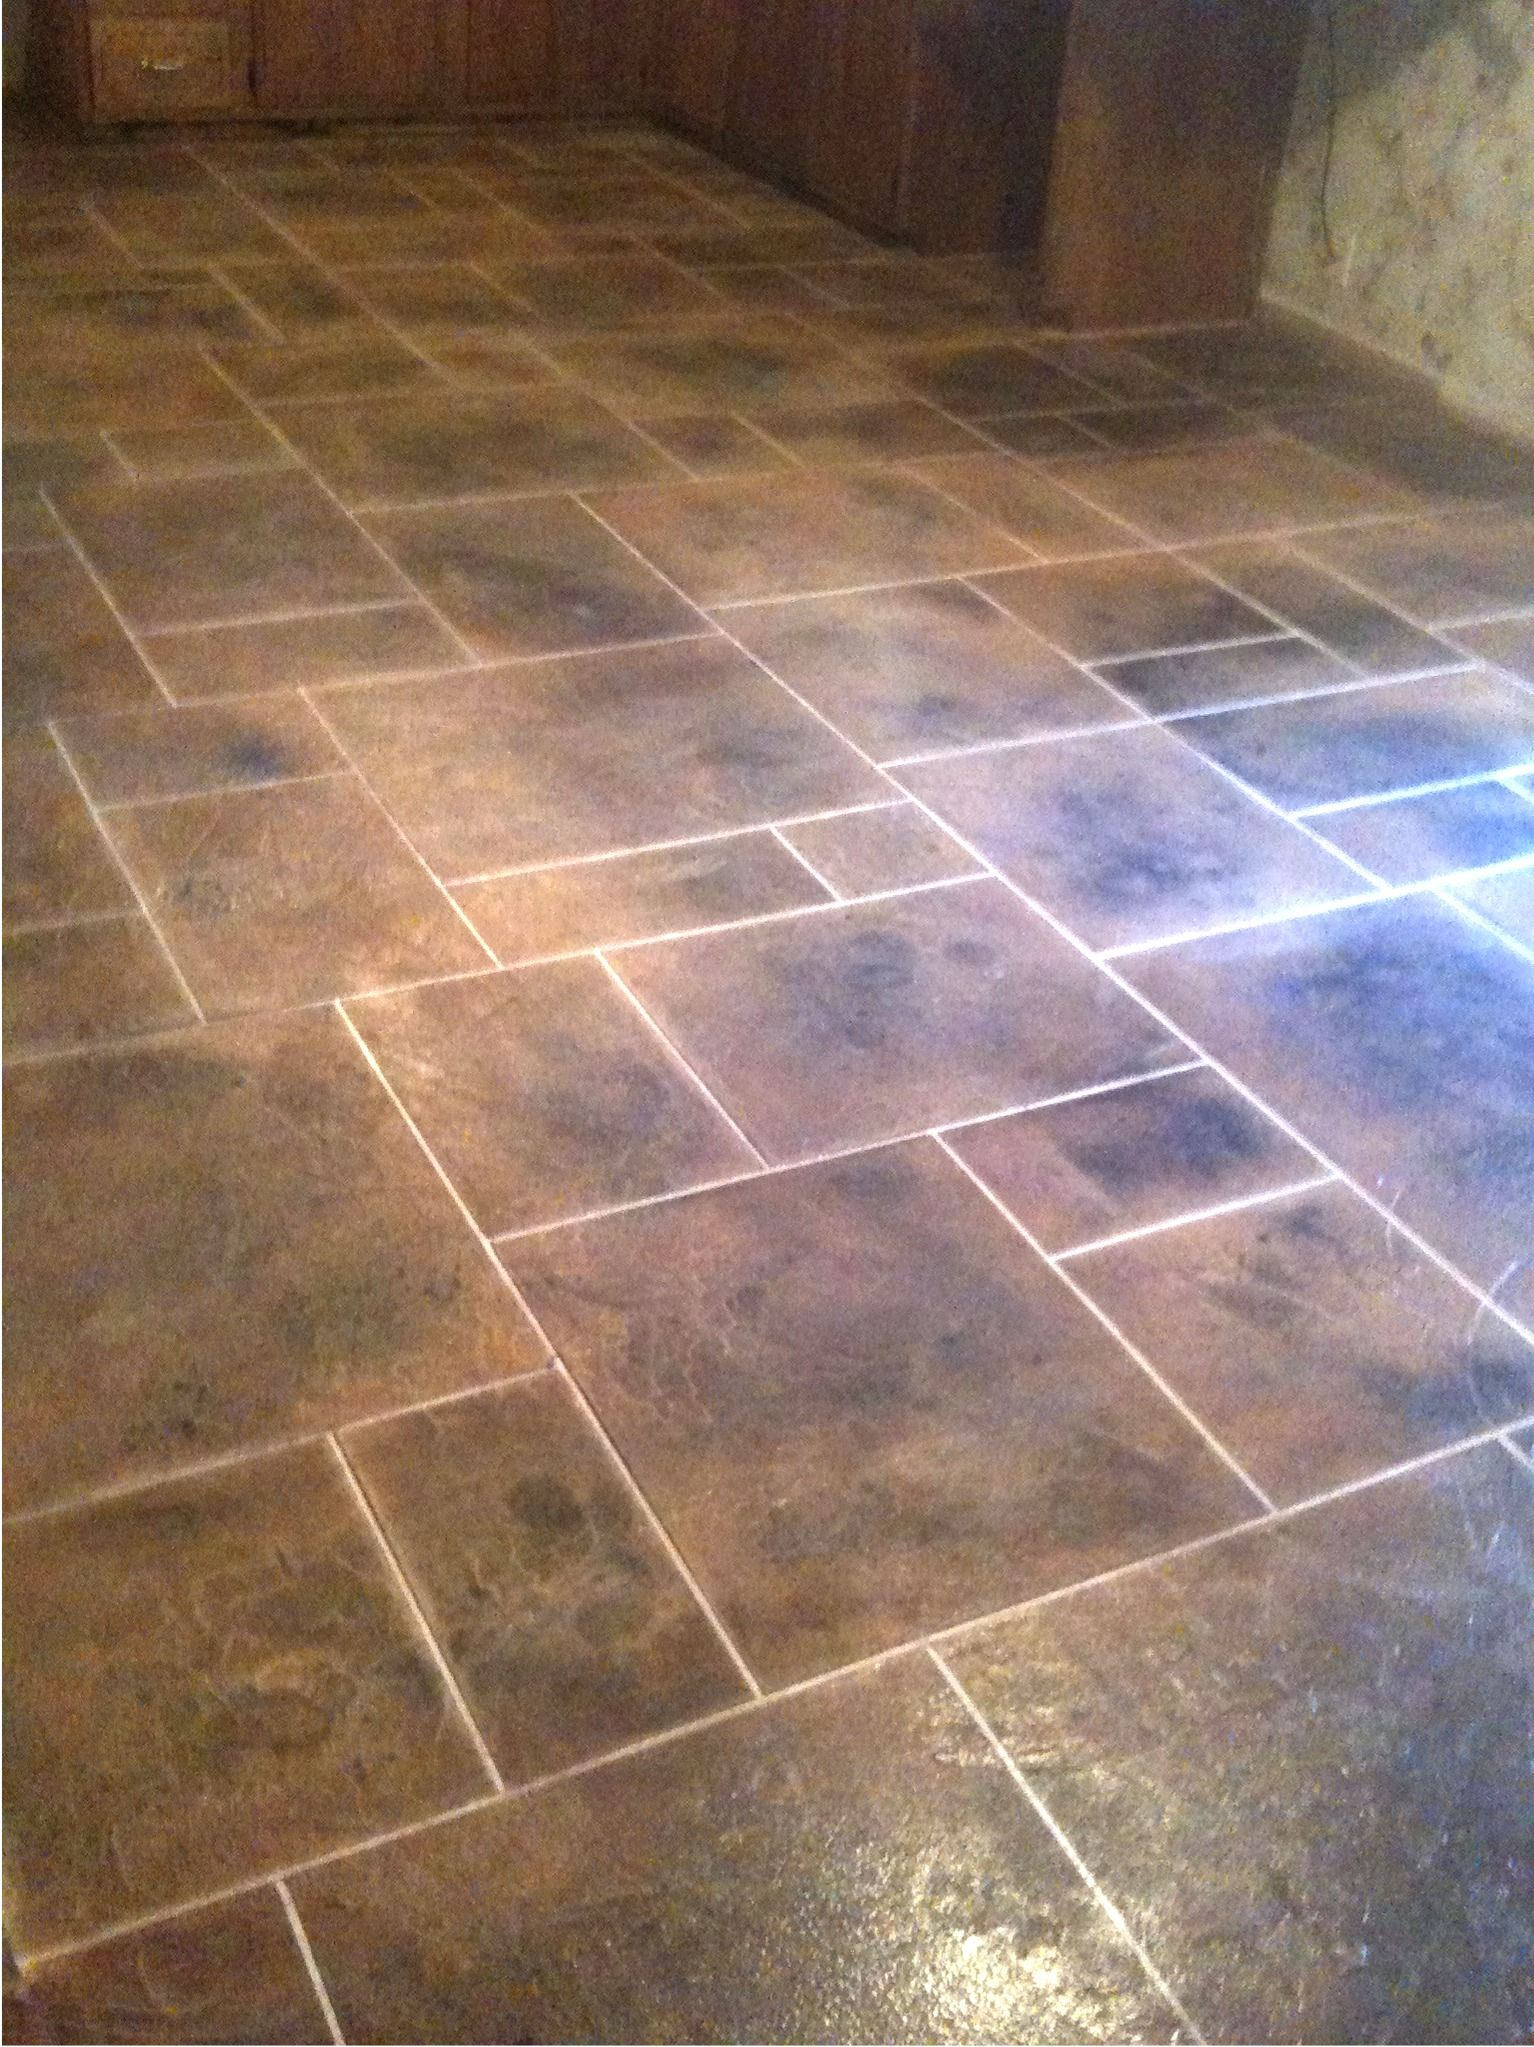 Kitchen floor tile patterns concrete overlay random for 12x12 floor tile designs